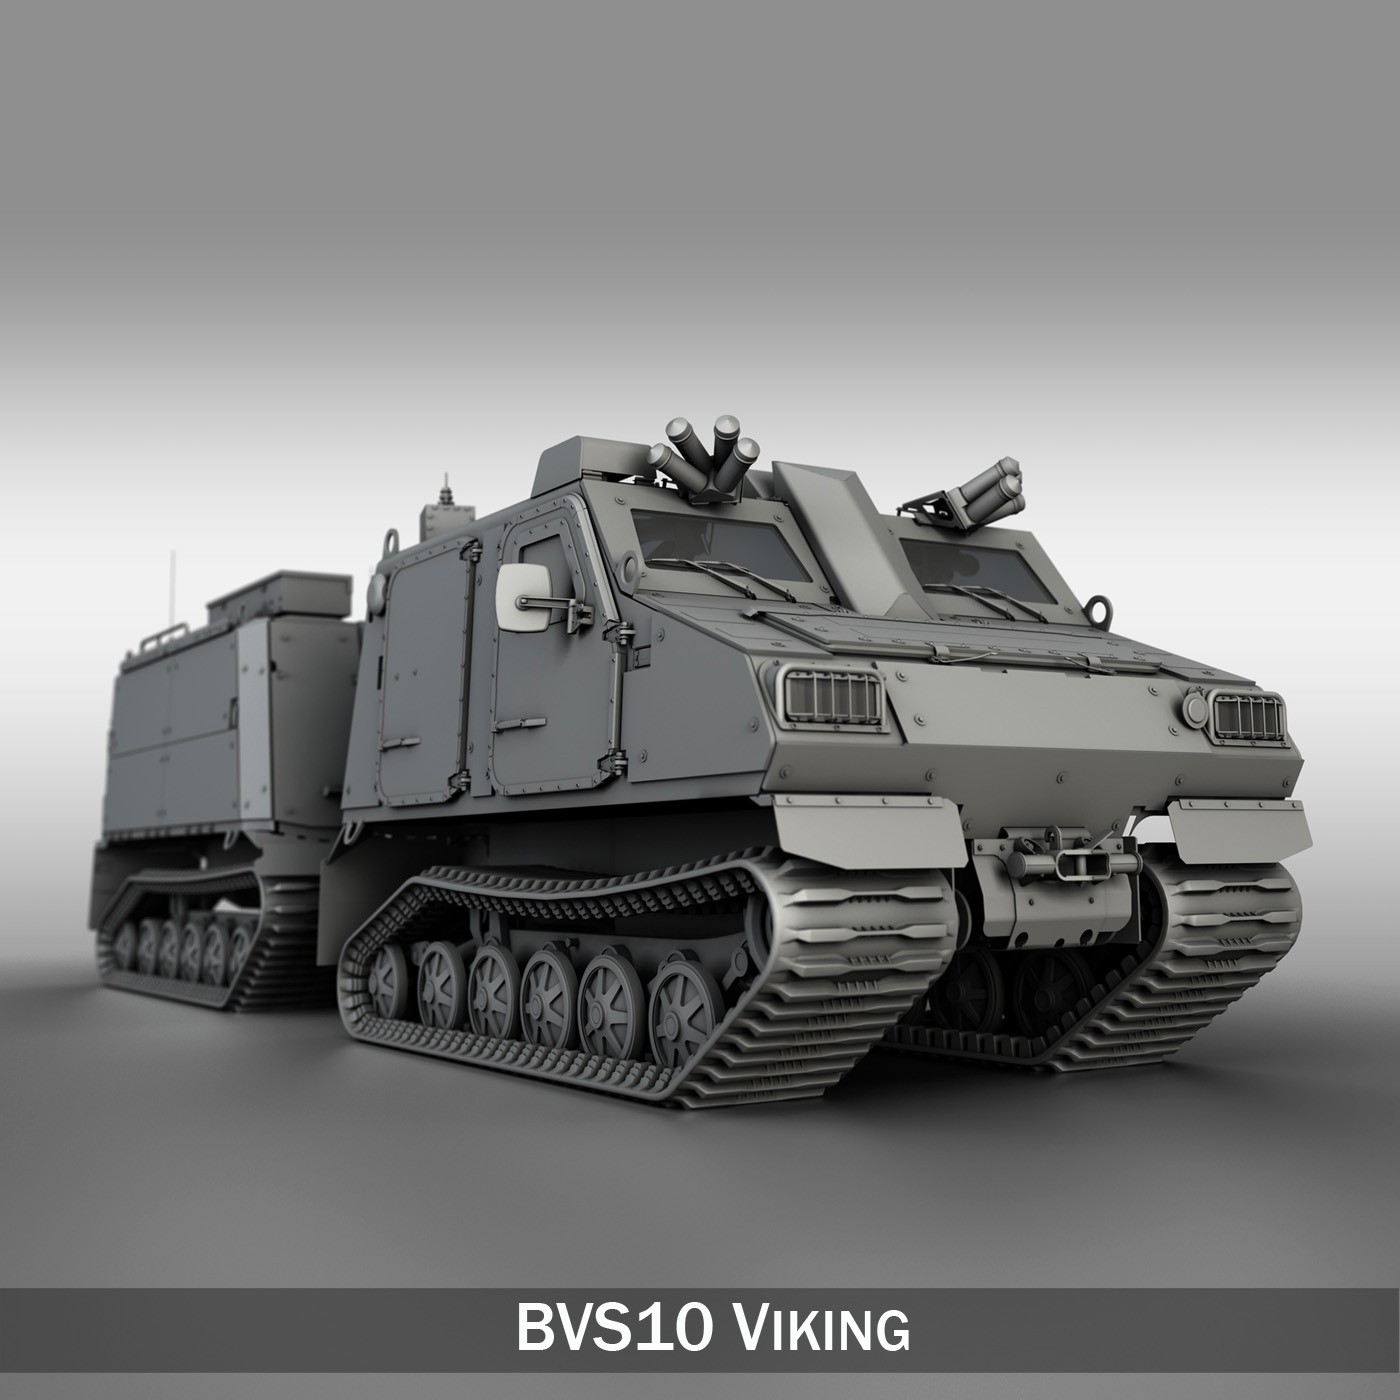 bvs10 viking 3d model 3ds fbx c4d lwo obj 189202